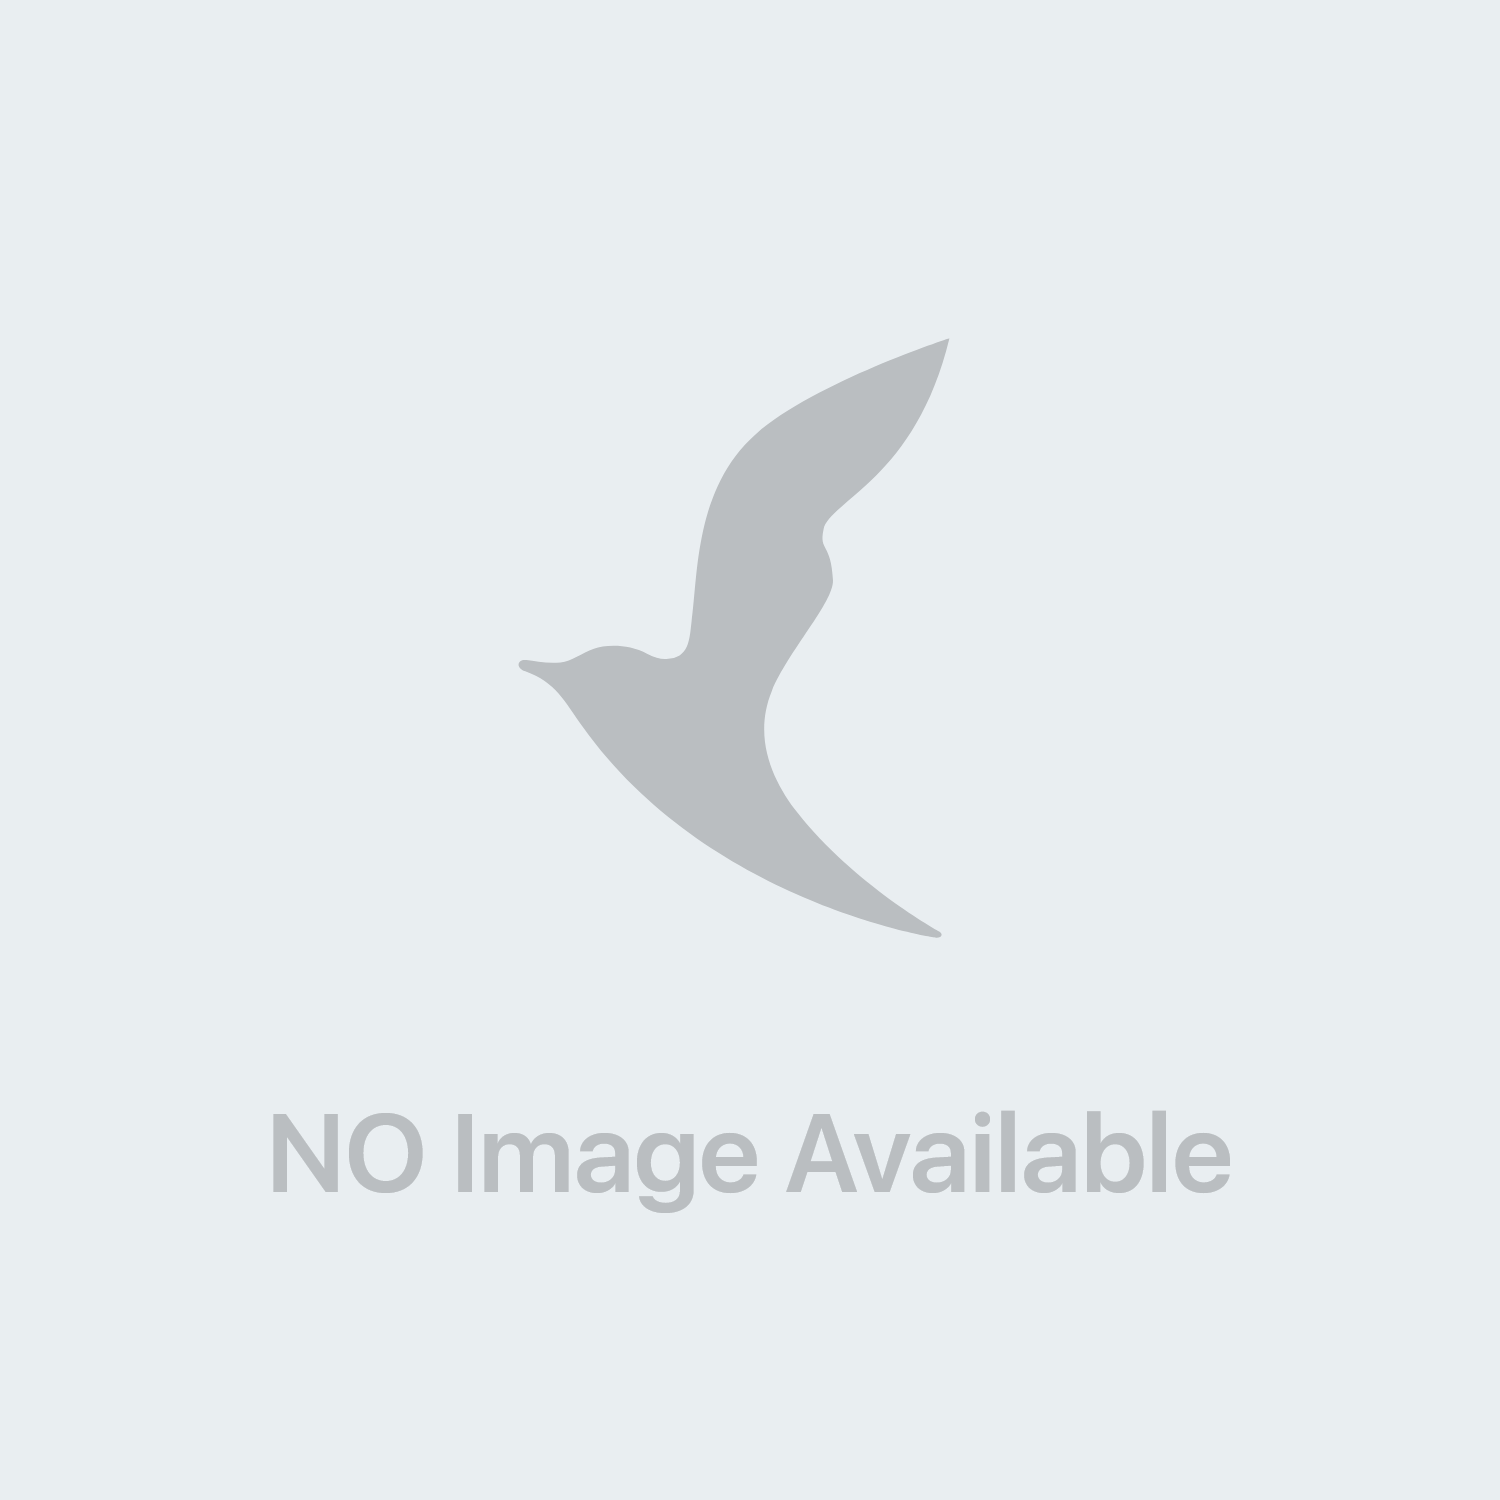 Rectoreparil Pomata Rettale 40 gr